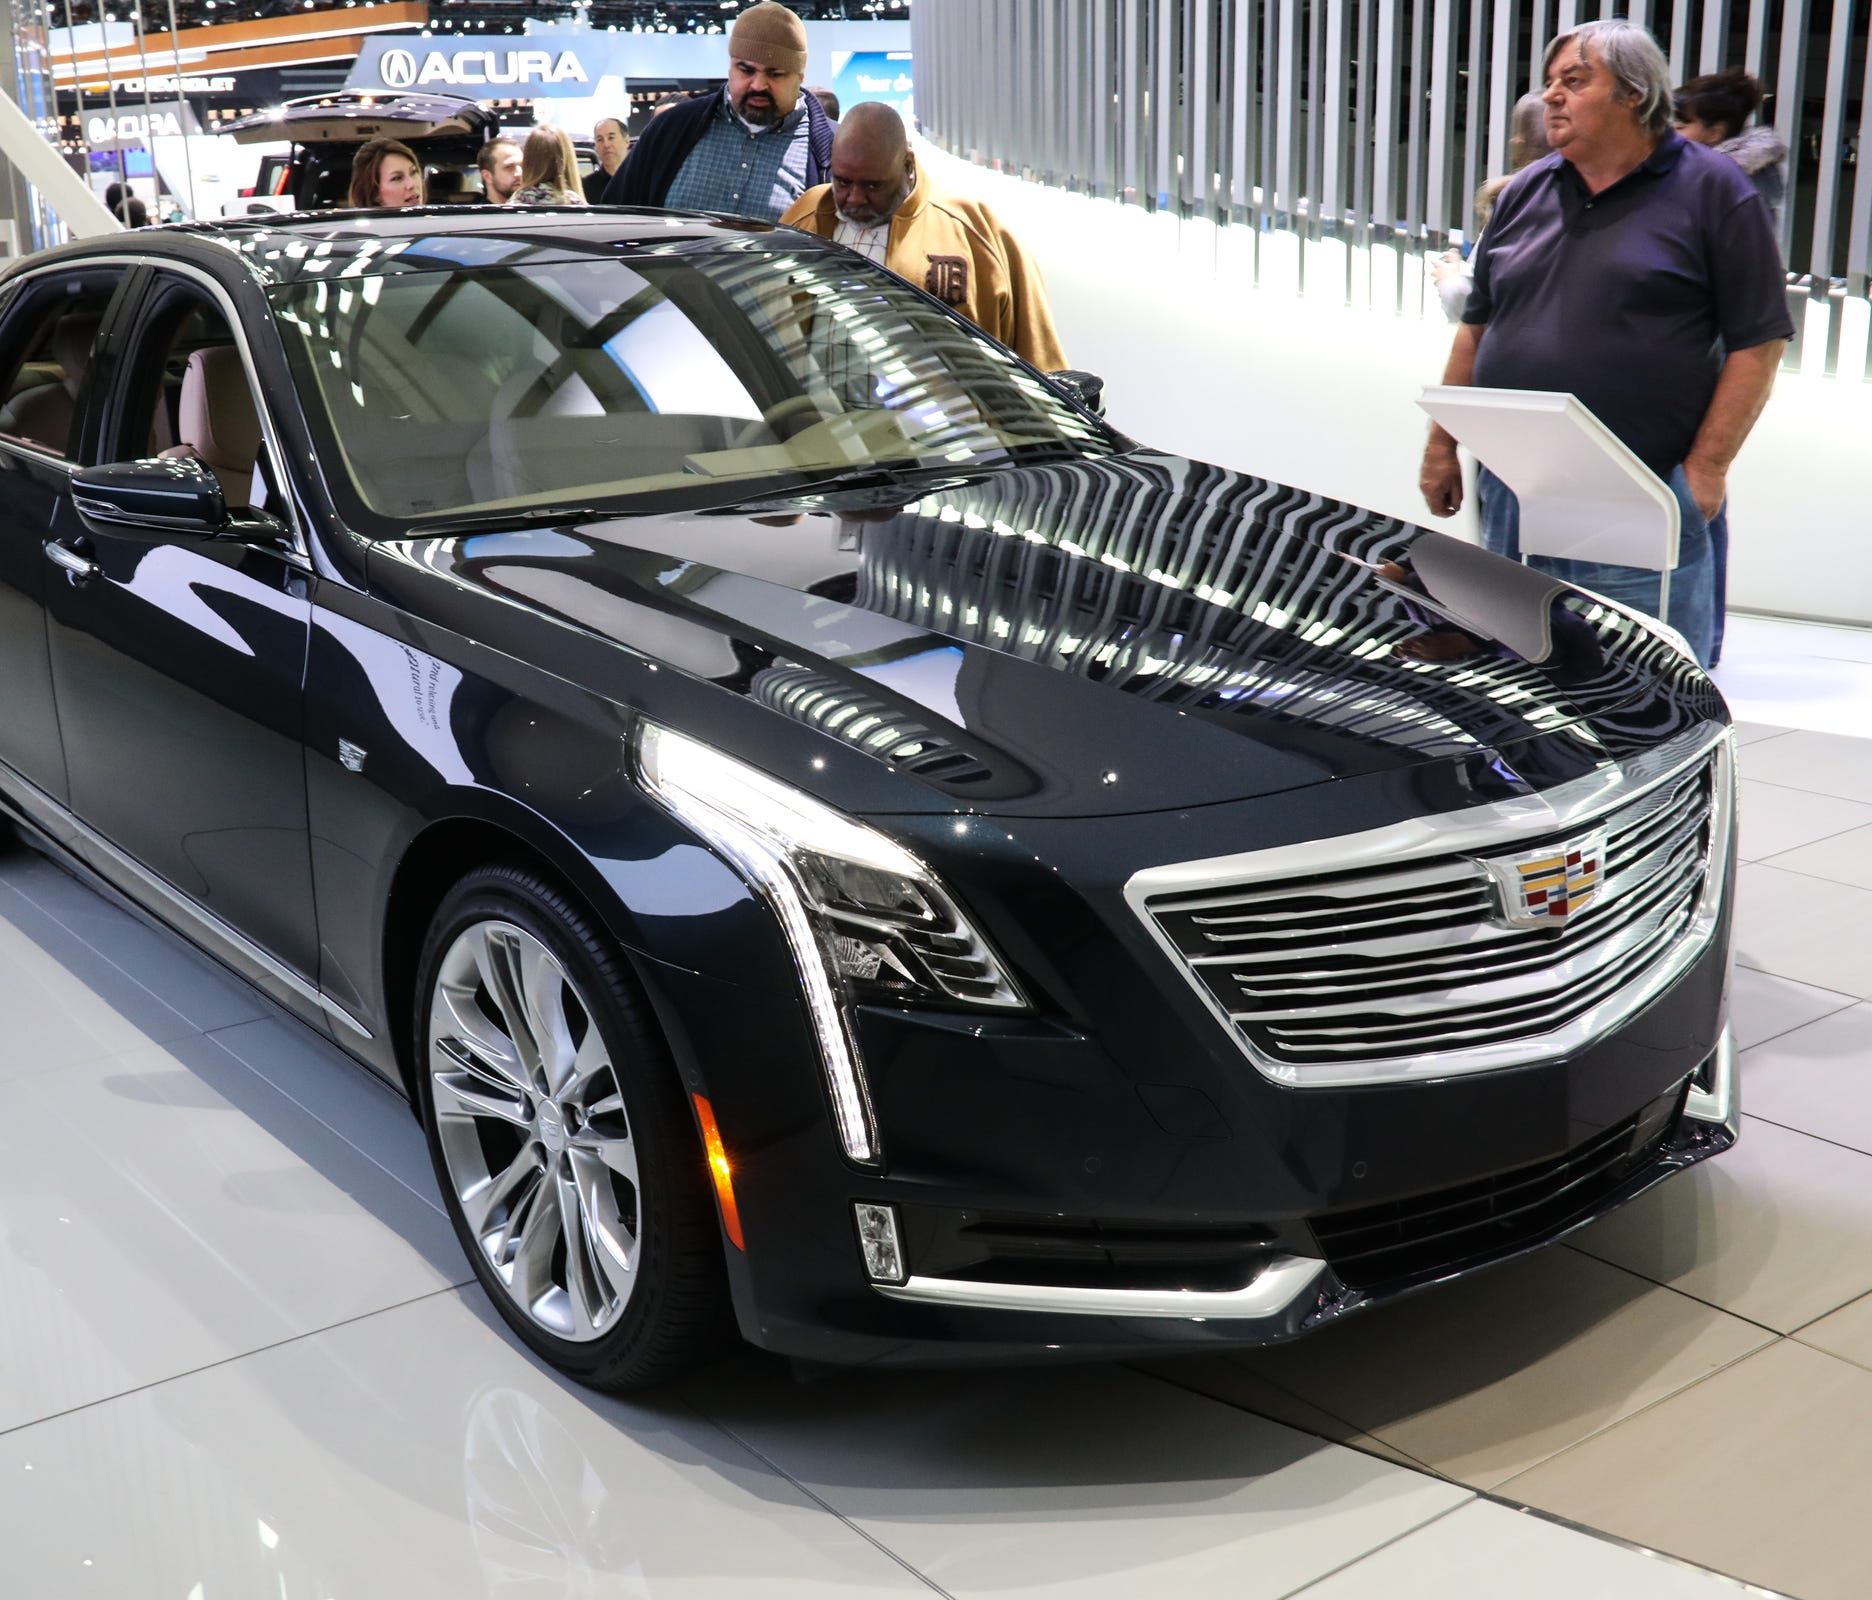 The Cadillac Super Cruise CT6 has a hands-free driving system for the freeway seen at the North American International Auto Show in Detroit on Thursday, Jan. 25, 2018.